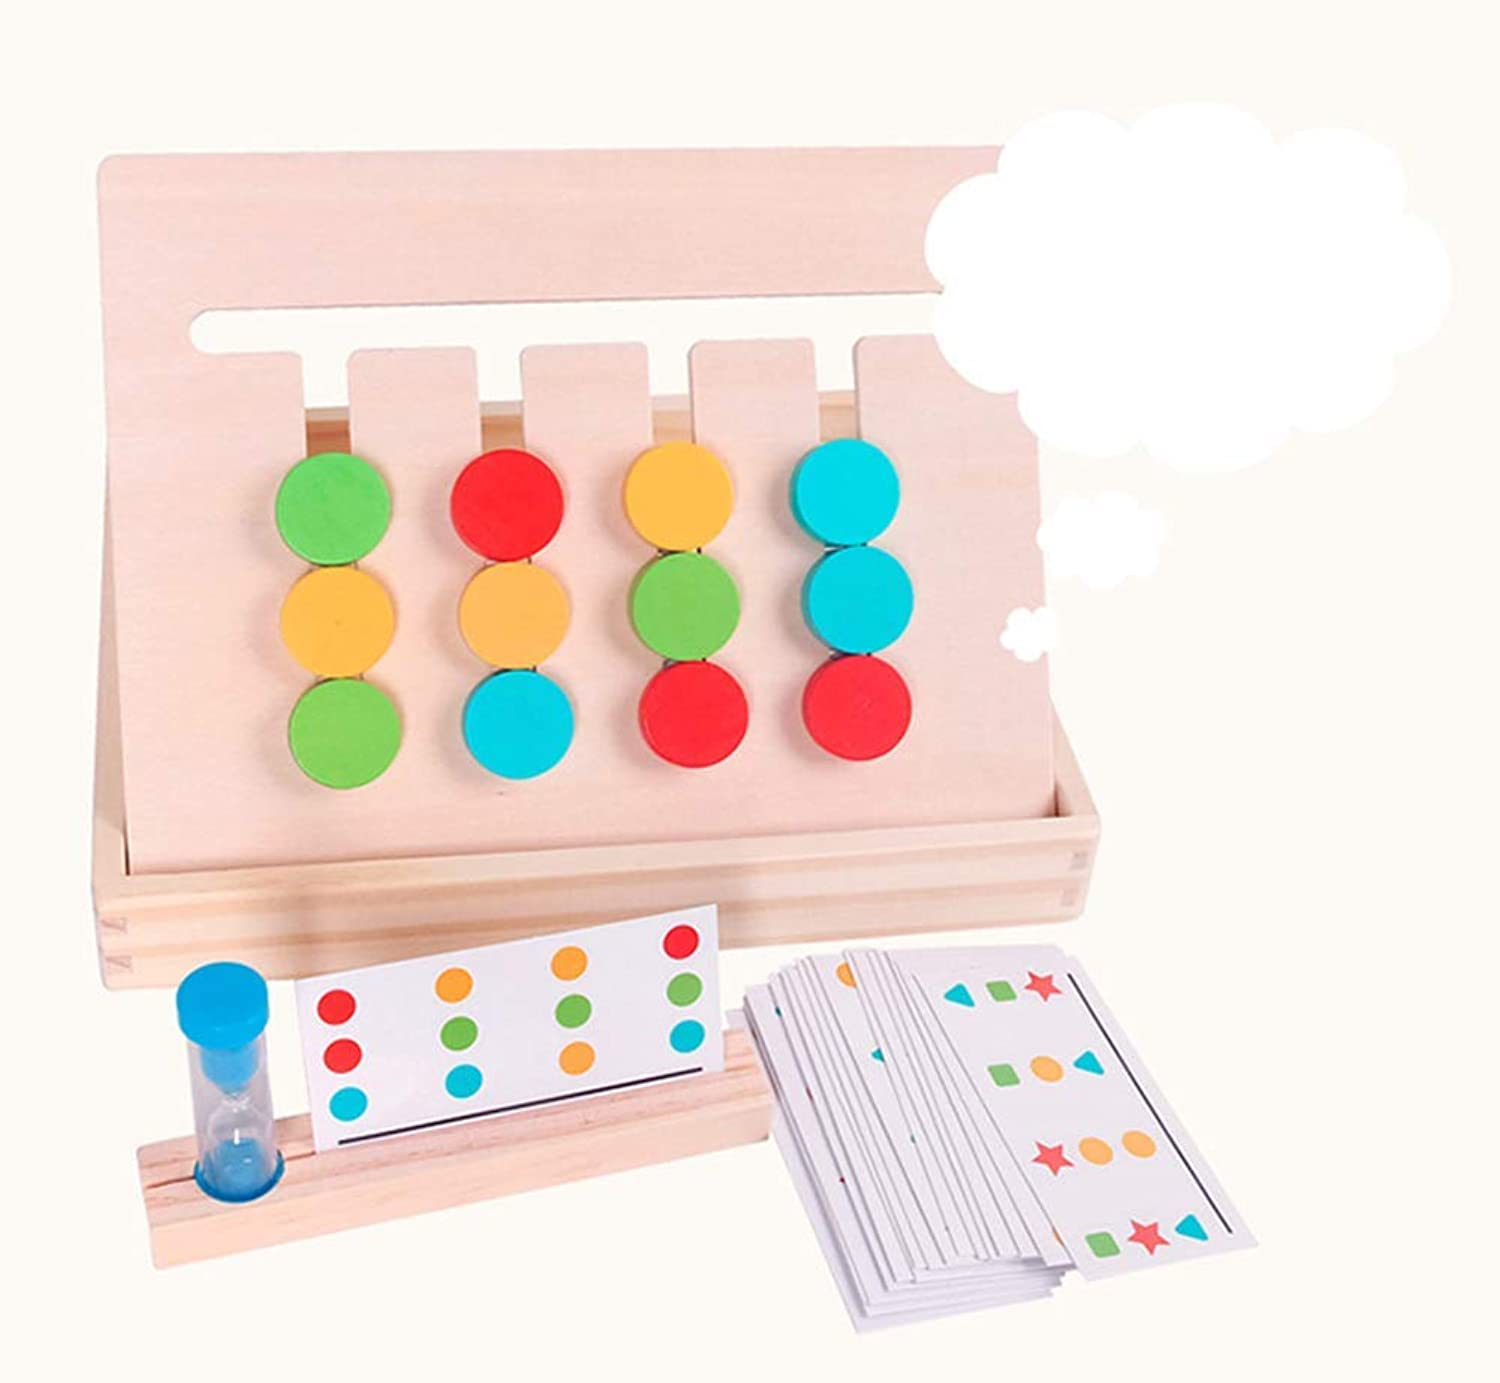 Flyme Wooden Puzzle Game, Enlightenment Puzzle Logic Thinking Training Toy Wood color Sorting Game Wooden Sorting Toy with color Cards for Kids